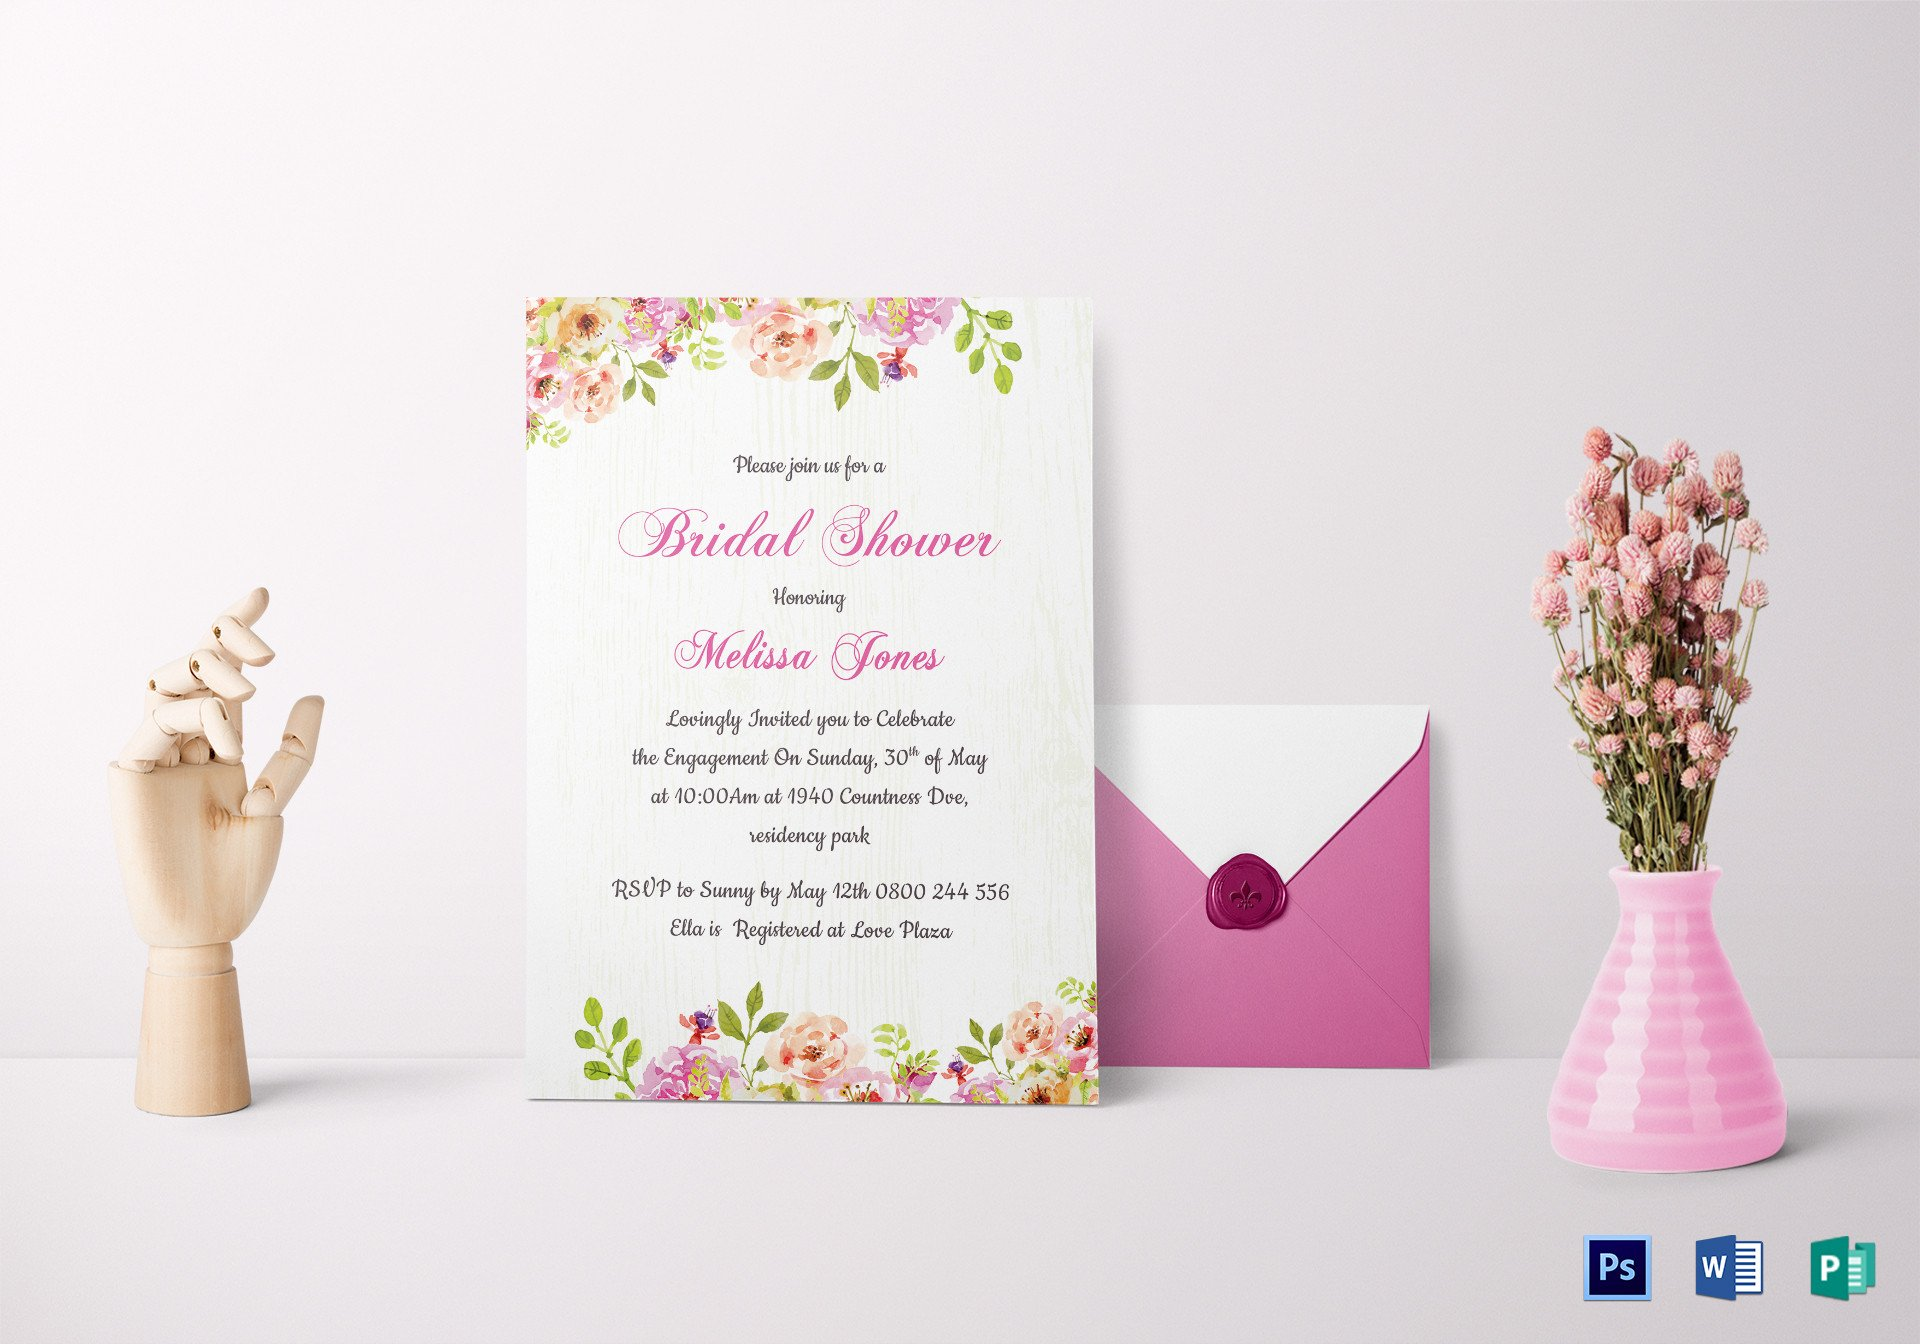 Bridal Shower Card Template Floral Bridal Shower Invitation Card Design Template In